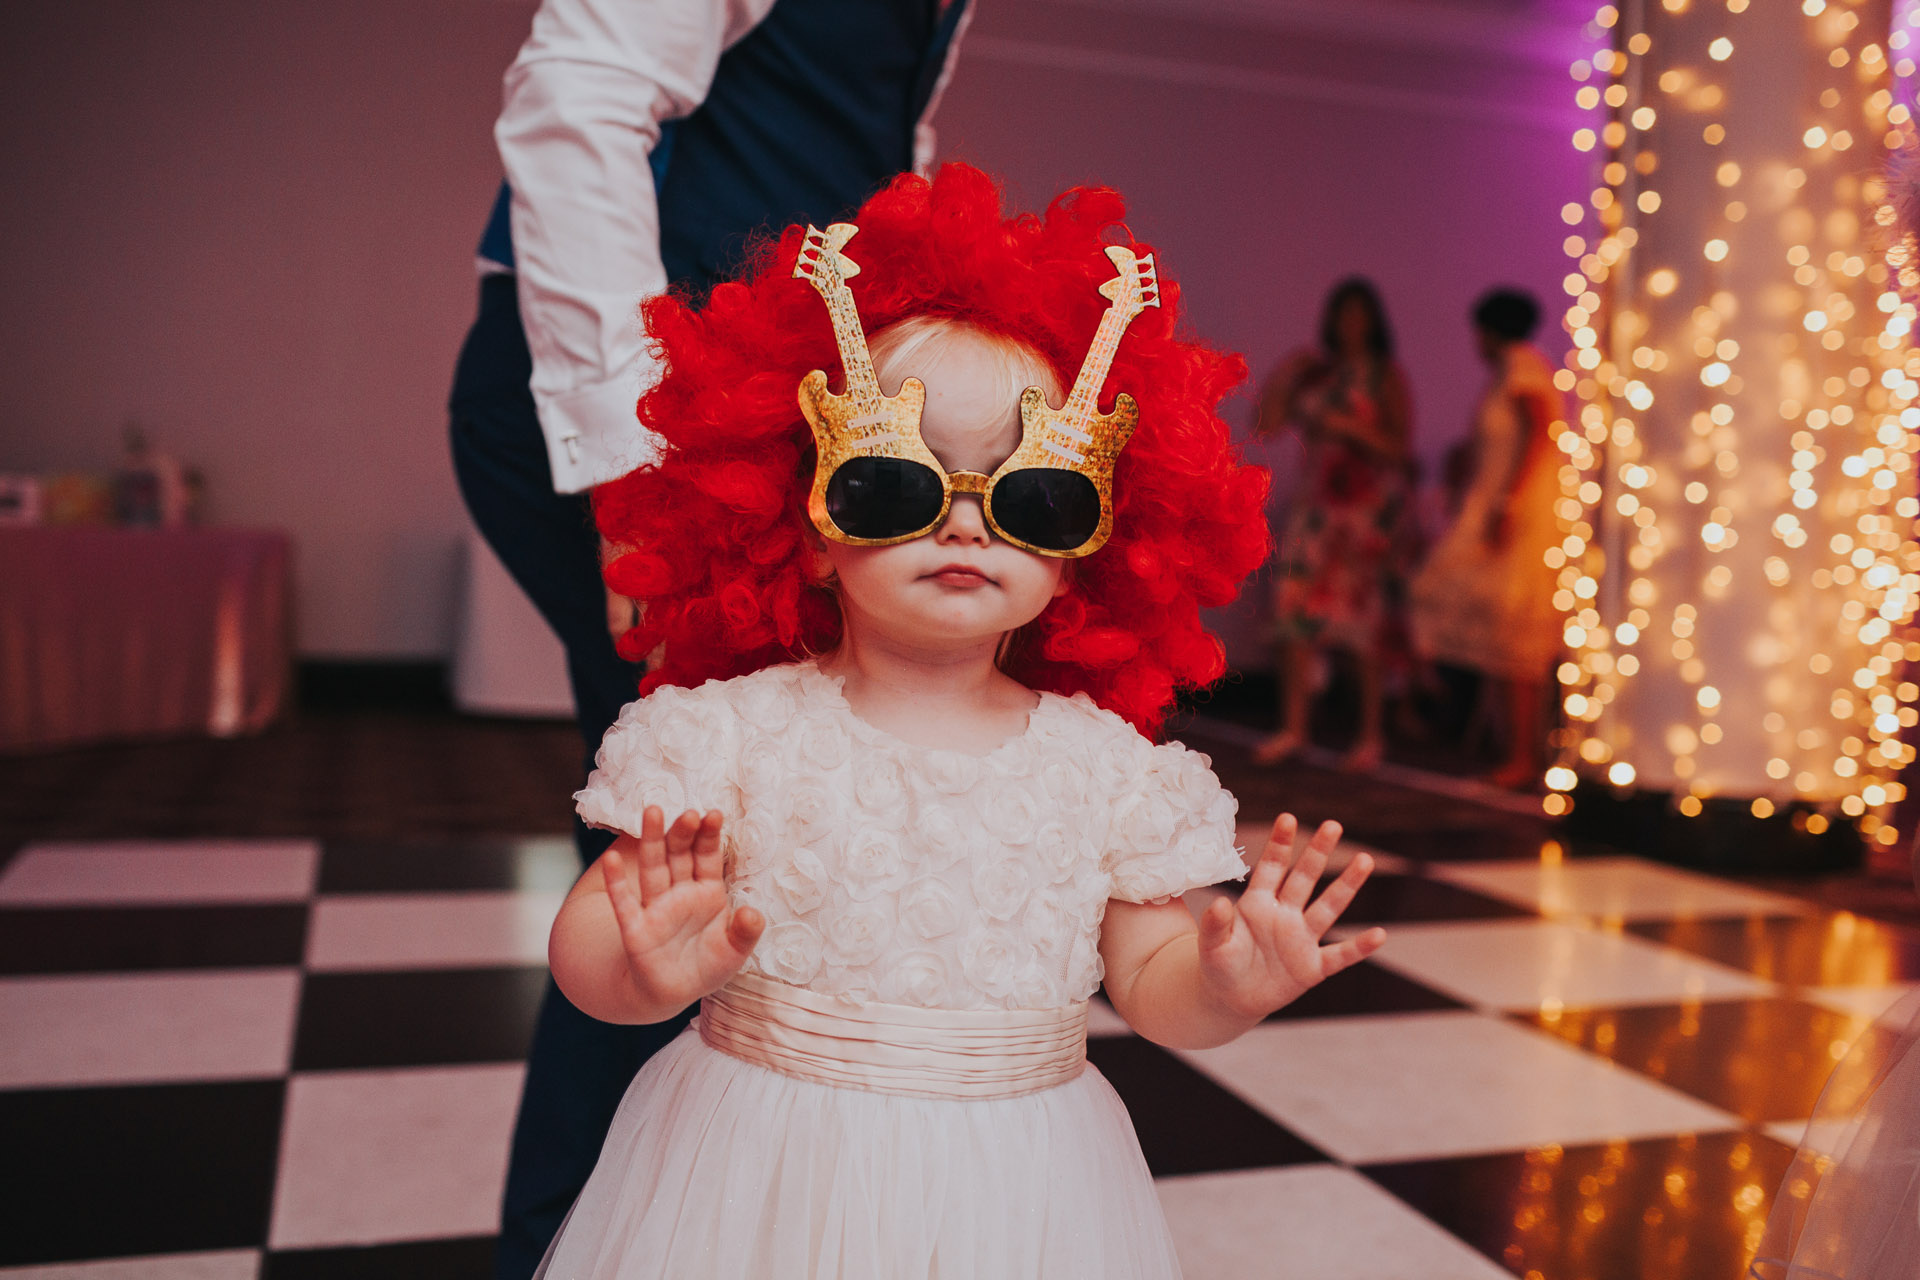 Toddler in wig and glasses on Manchester wedding dance floor.